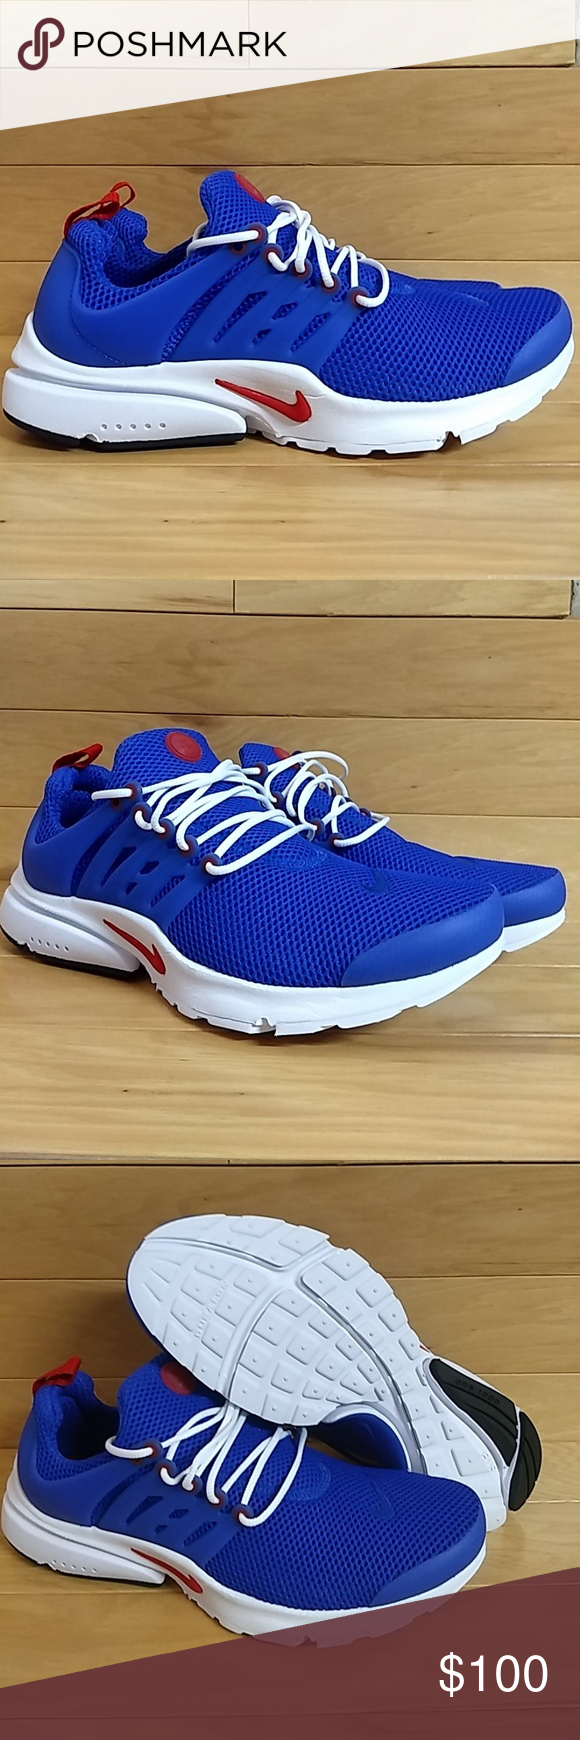 d41f6b5a32 Nikr Air Presto Essential Blue Red 848187-408 Brand New. With Box. Great  quality Nike running/casual sneakers at a great price.